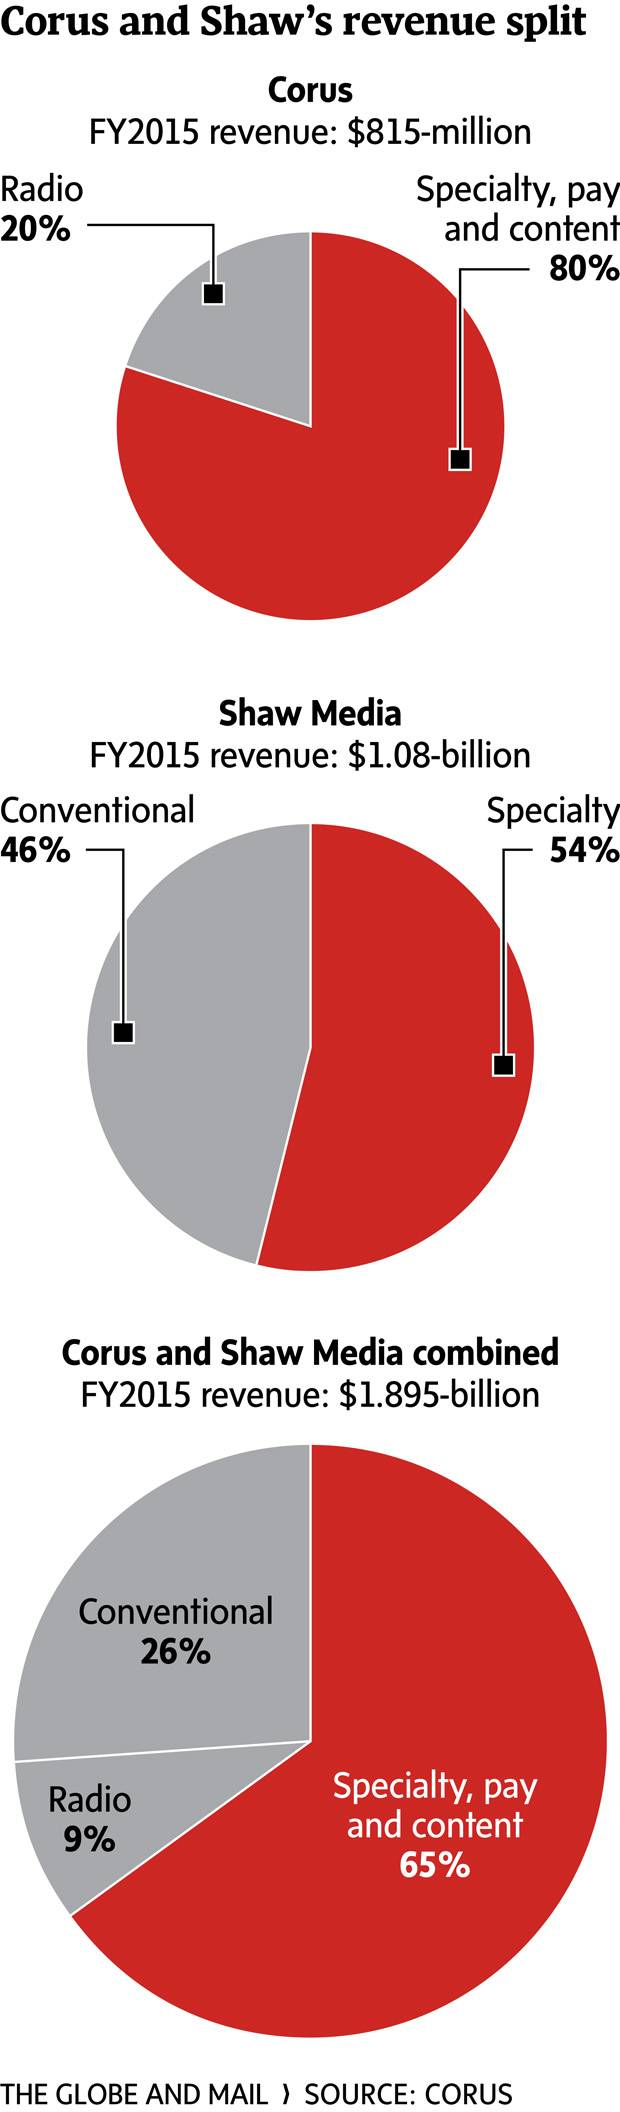 Corus prepares for shifting TV market with Shaw deal